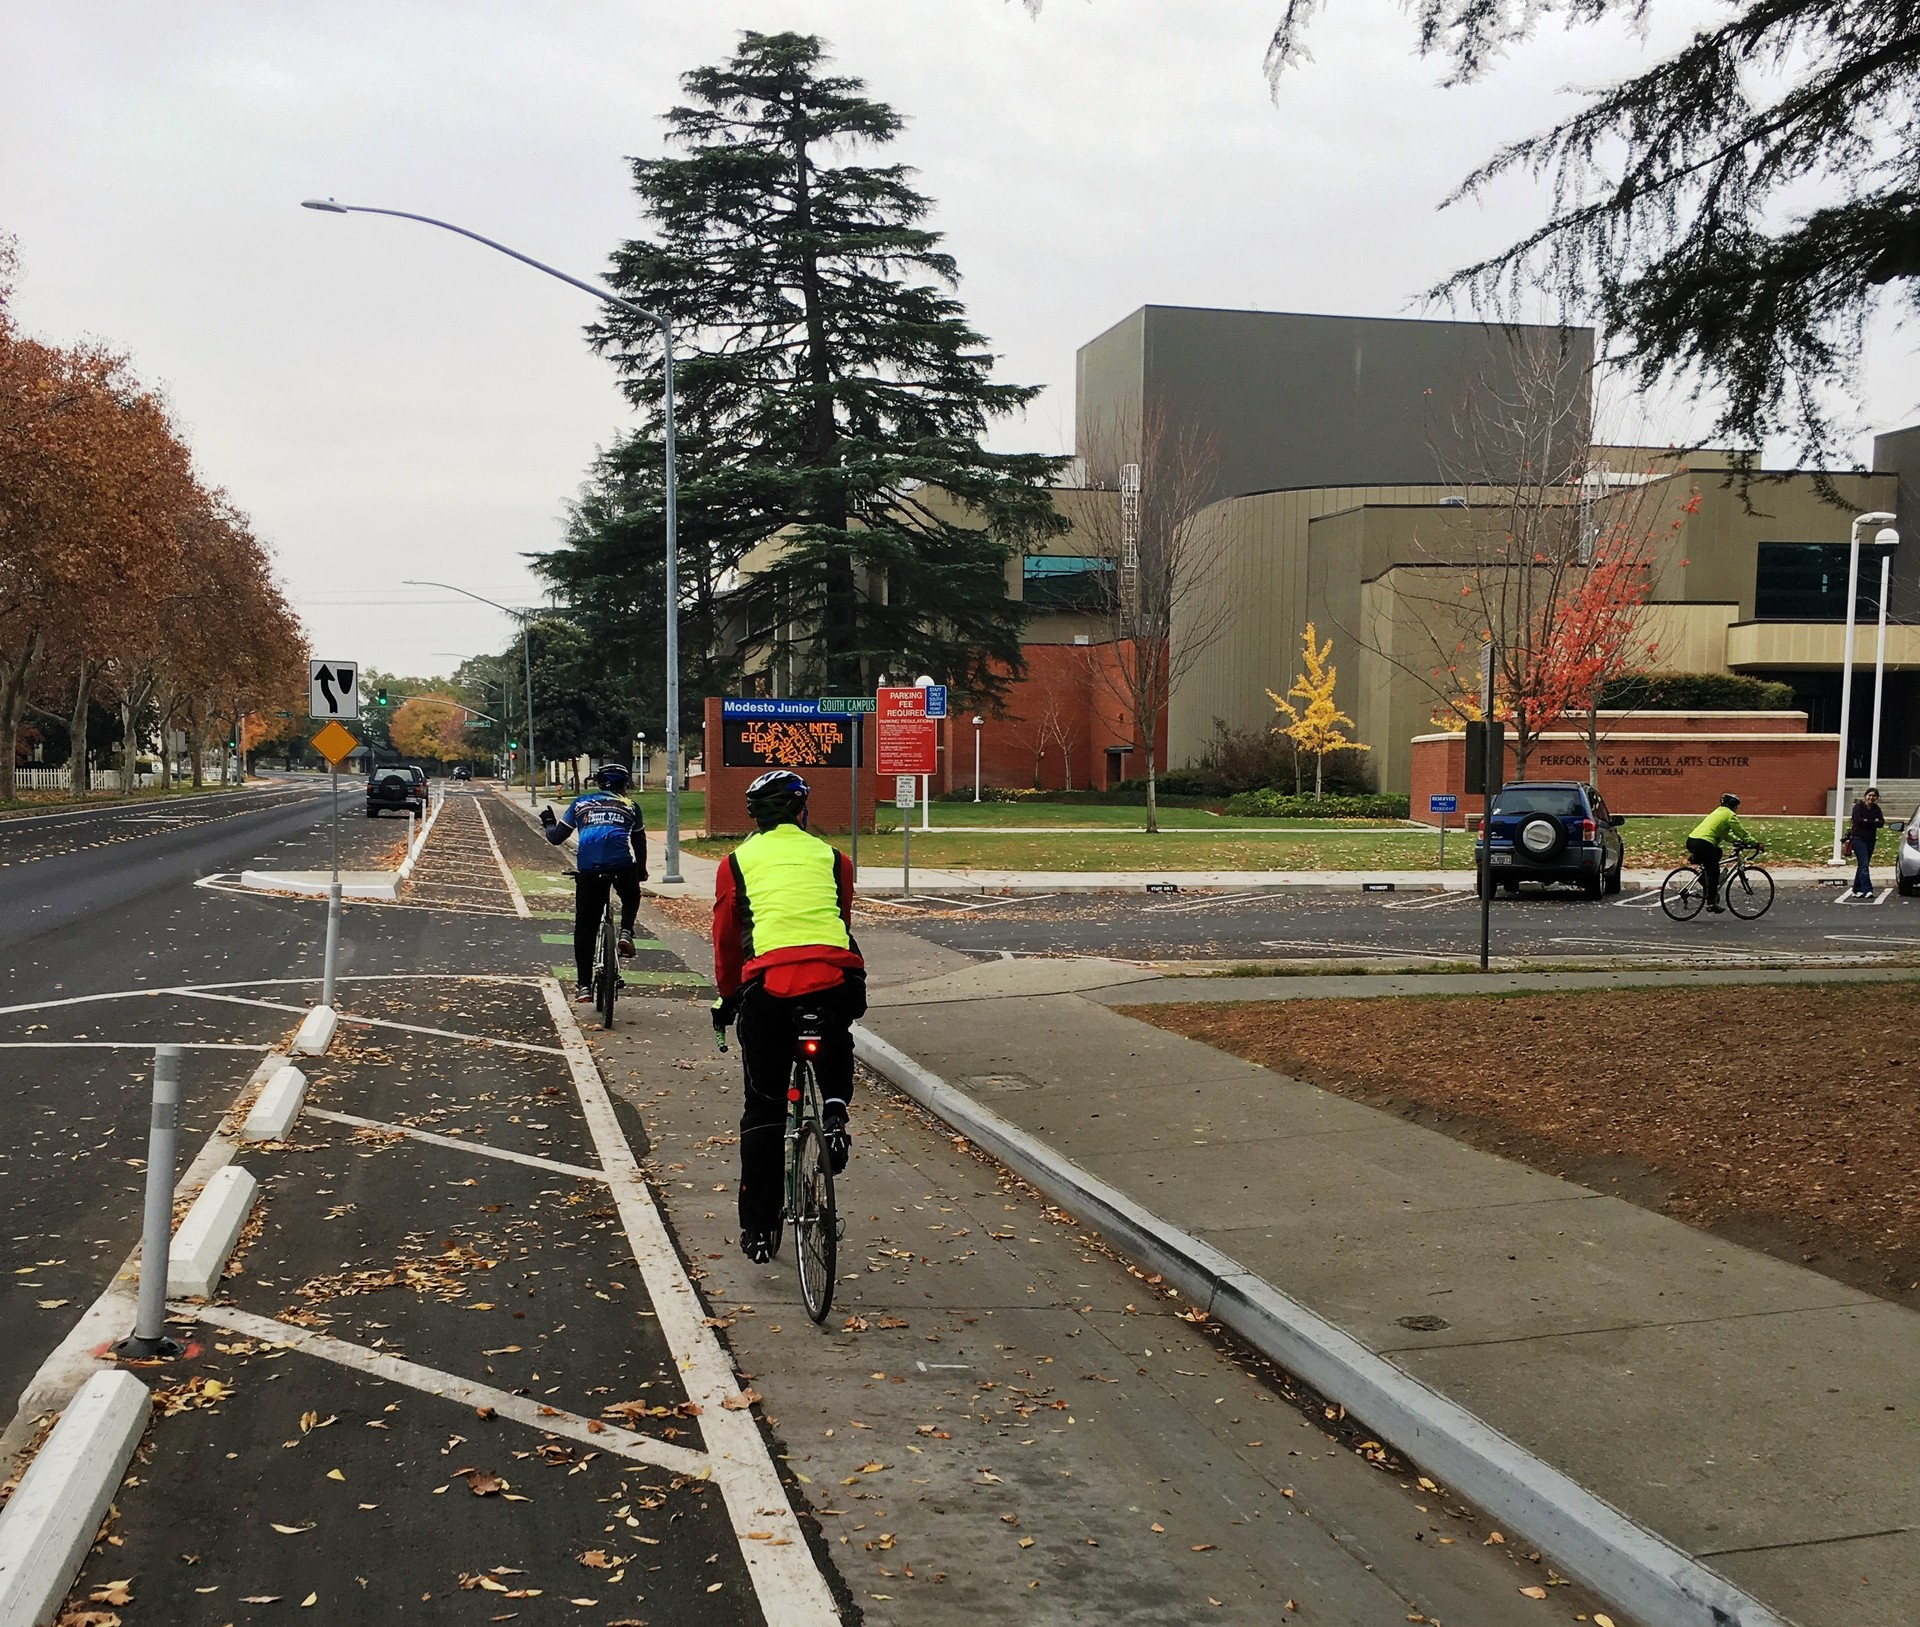 Bikers use new lanes opened last year in the Modesto Junior College area. The city paid $1.5 million in local funds to complete the project.